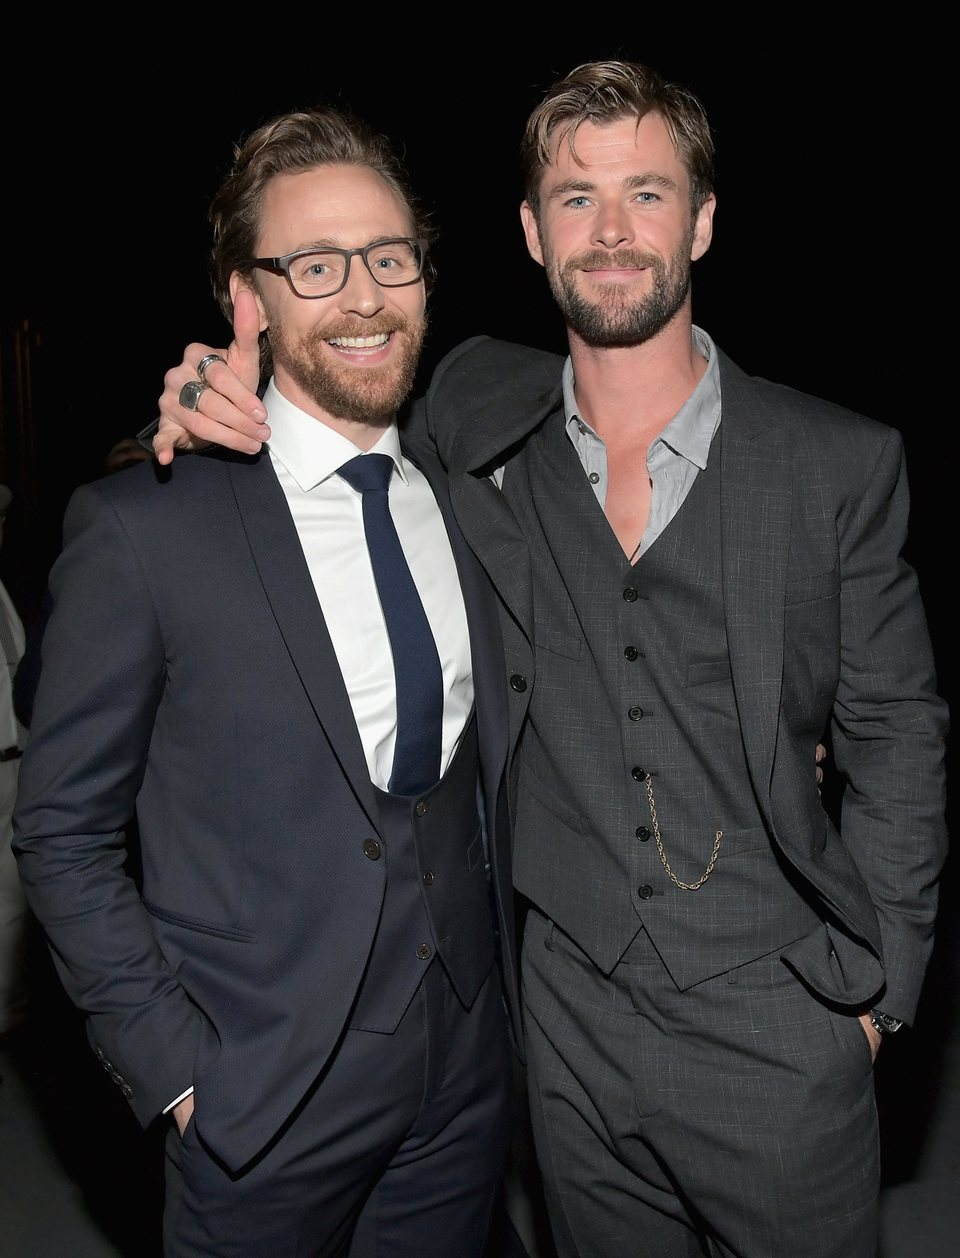 Chris Hemsworth y Tom Hiddleston posan juntos en la premiere de 'Vengadores: Infinity War'